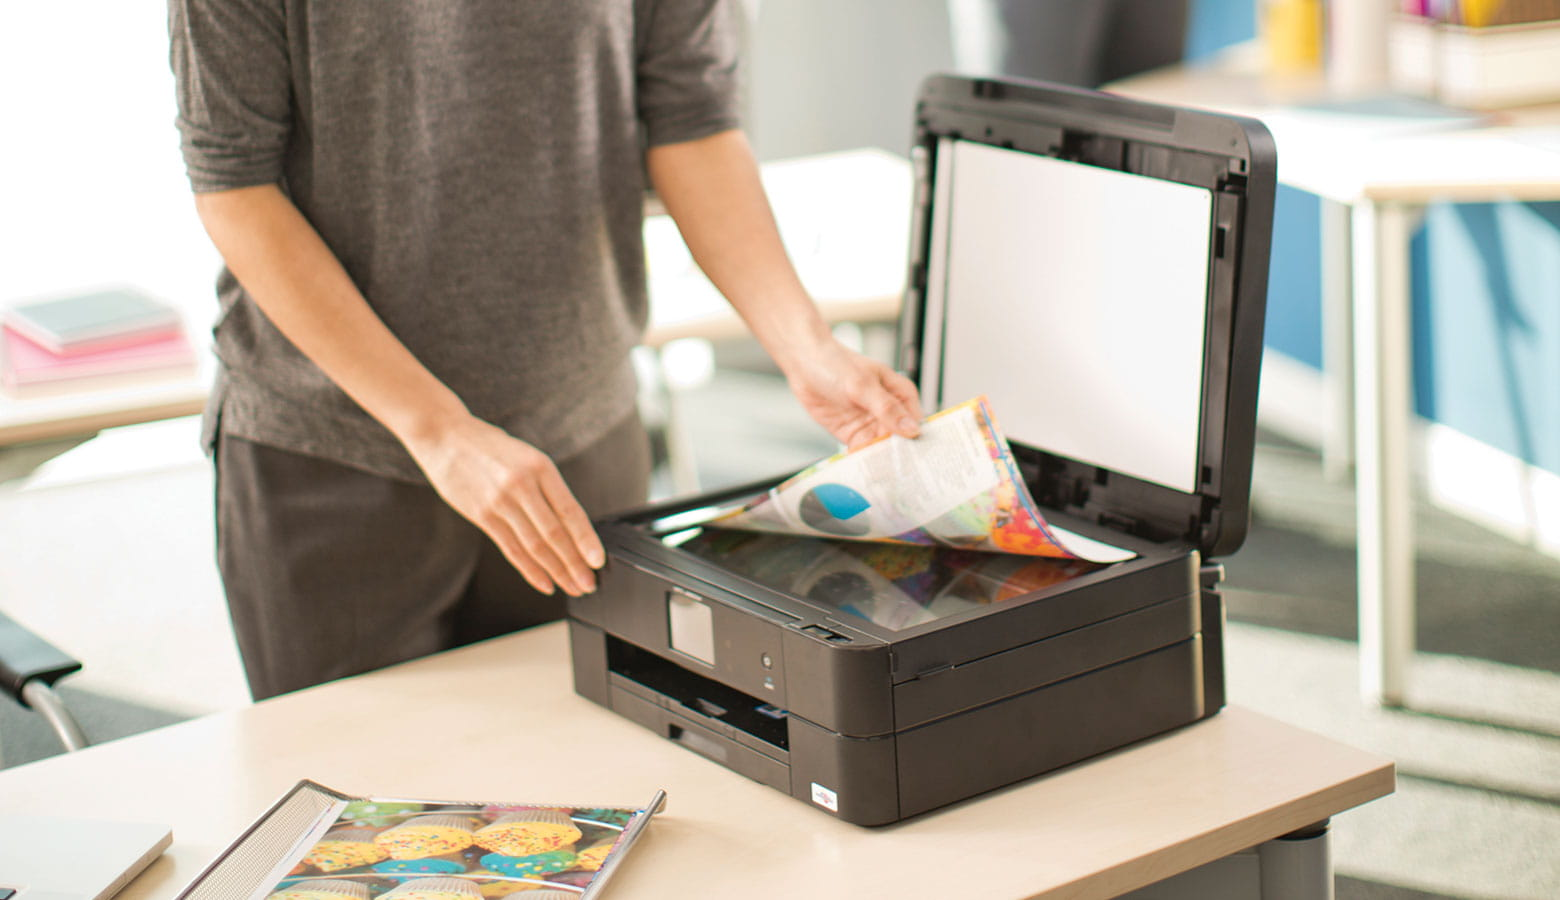 MFC-J680DW ALL-IN-ONE PRINTERS